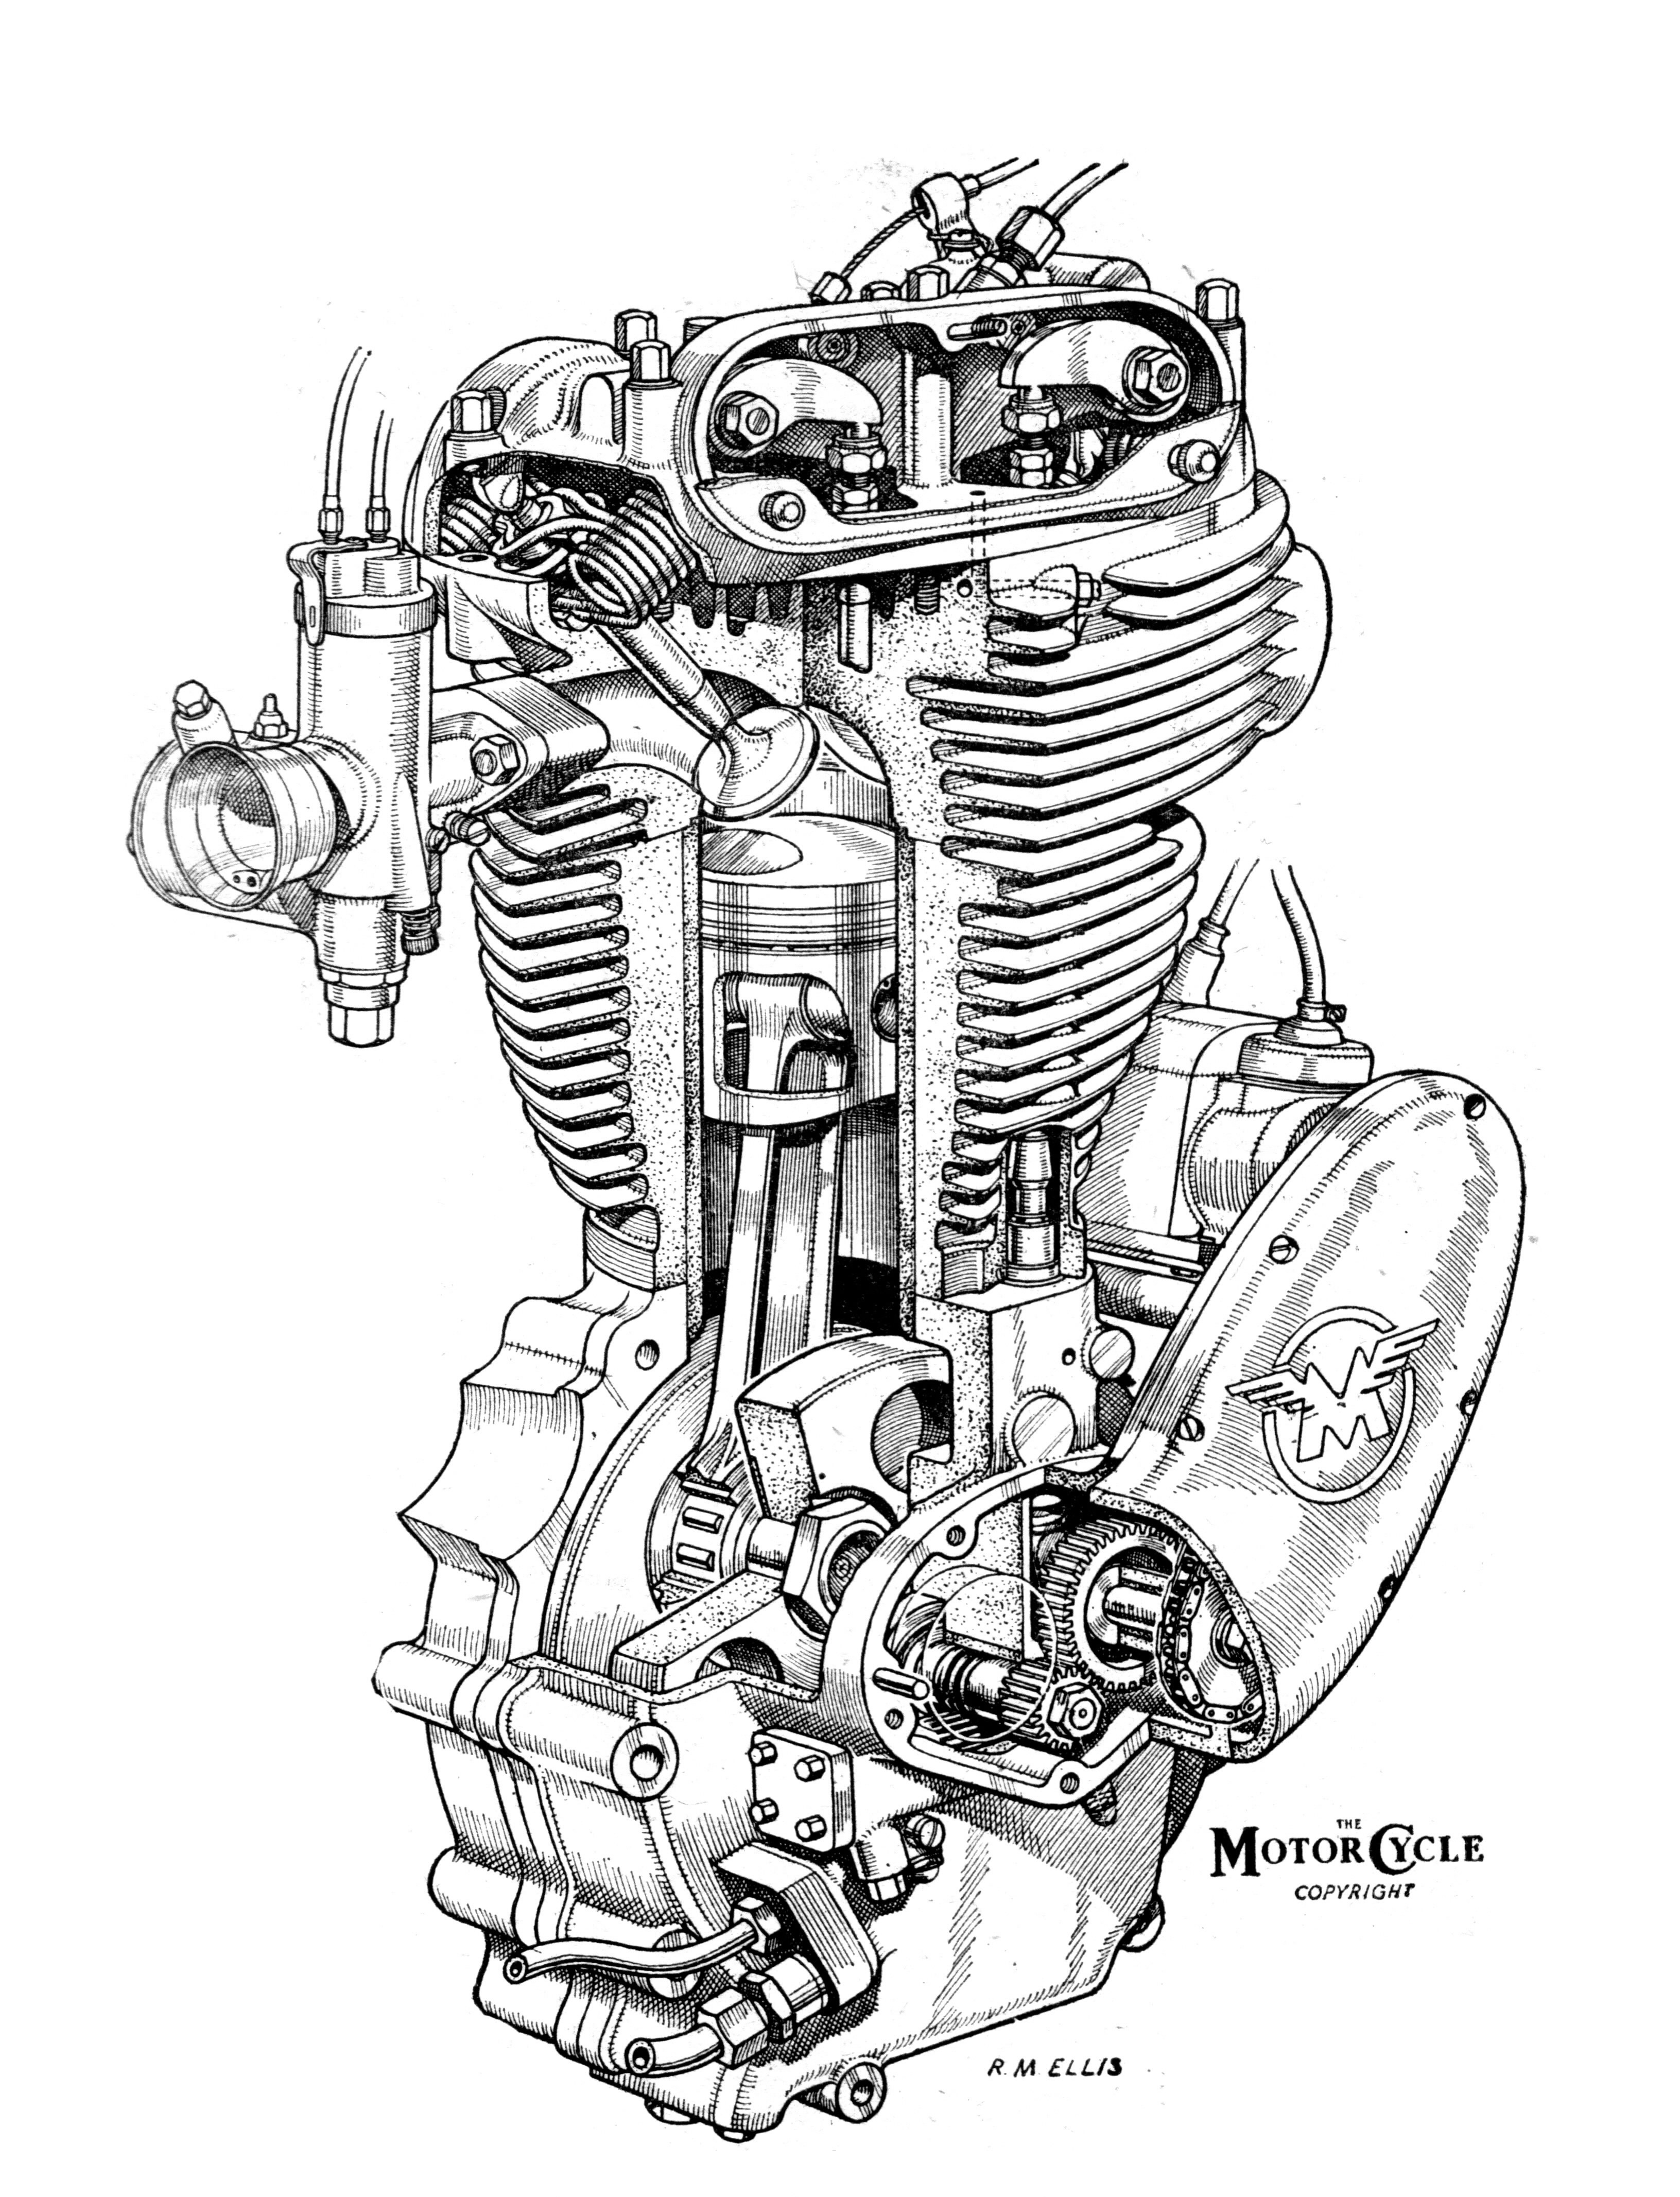 Matchless Motorcycle Engine Diagram Wiring Basic Ajs Owners Club View Topic Parts Book Exploded